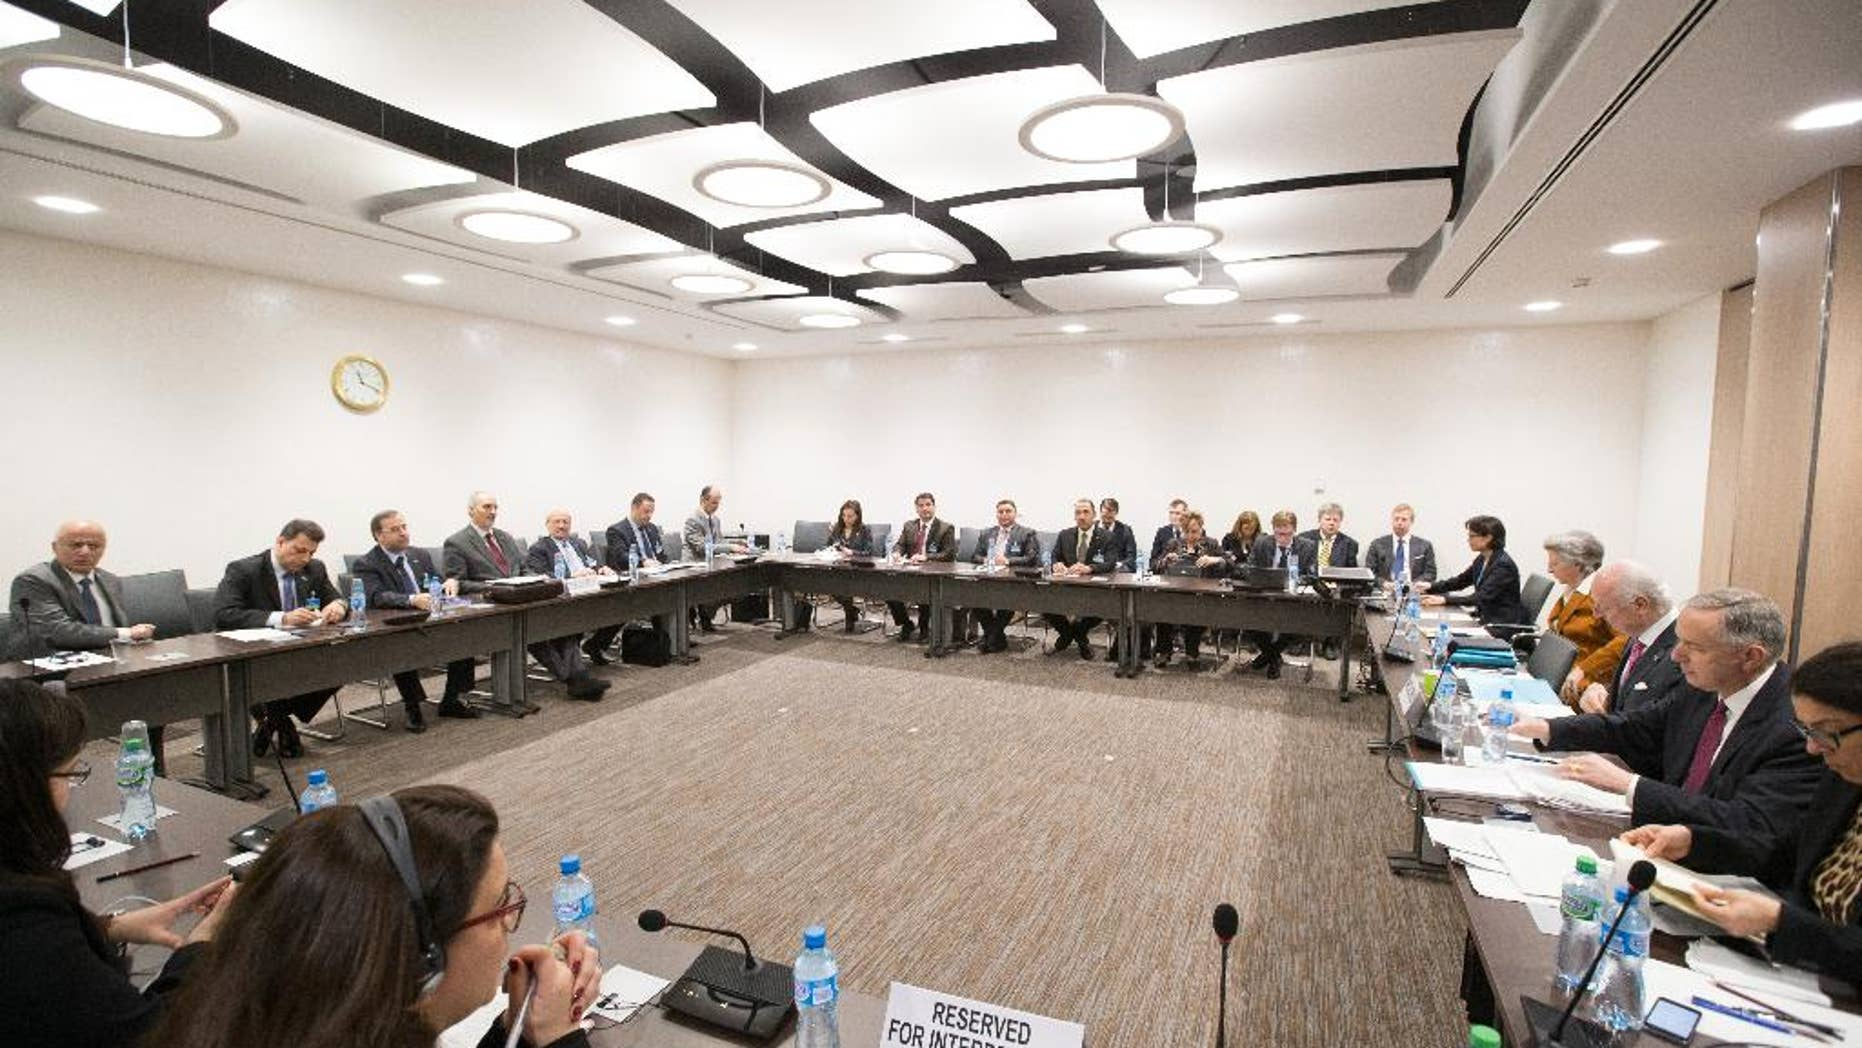 A general view of a meeting of Intra-Syria peace talks with Syrian government delegation and UN Syria envoy Staffan de Mistura, third from right, at Palais des Nations in Geneva, Switzerland, Monday, April 25, 2016. (Xu Jinquan/pool photo via AP)